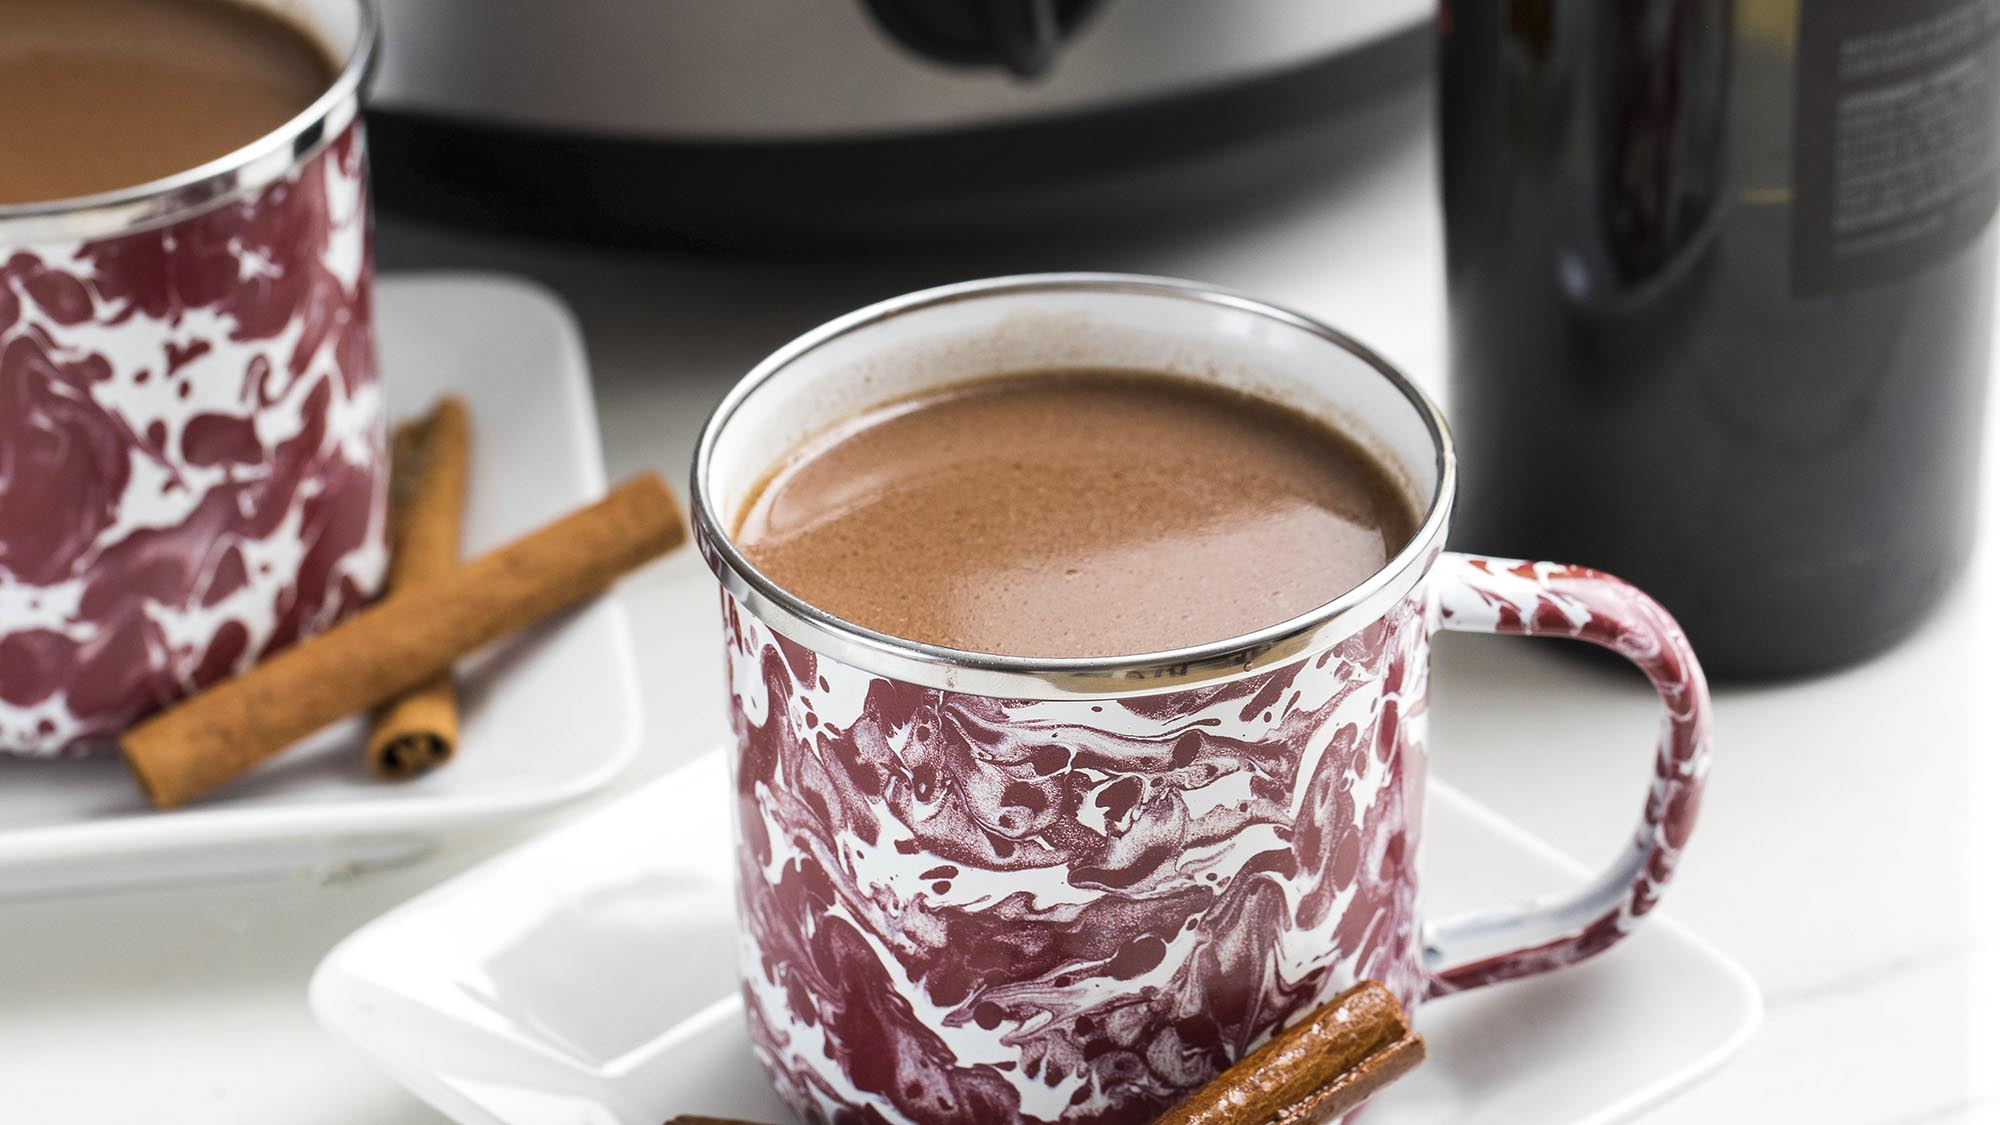 McCormick Slow Cooker Red Wine Hot Chocolate